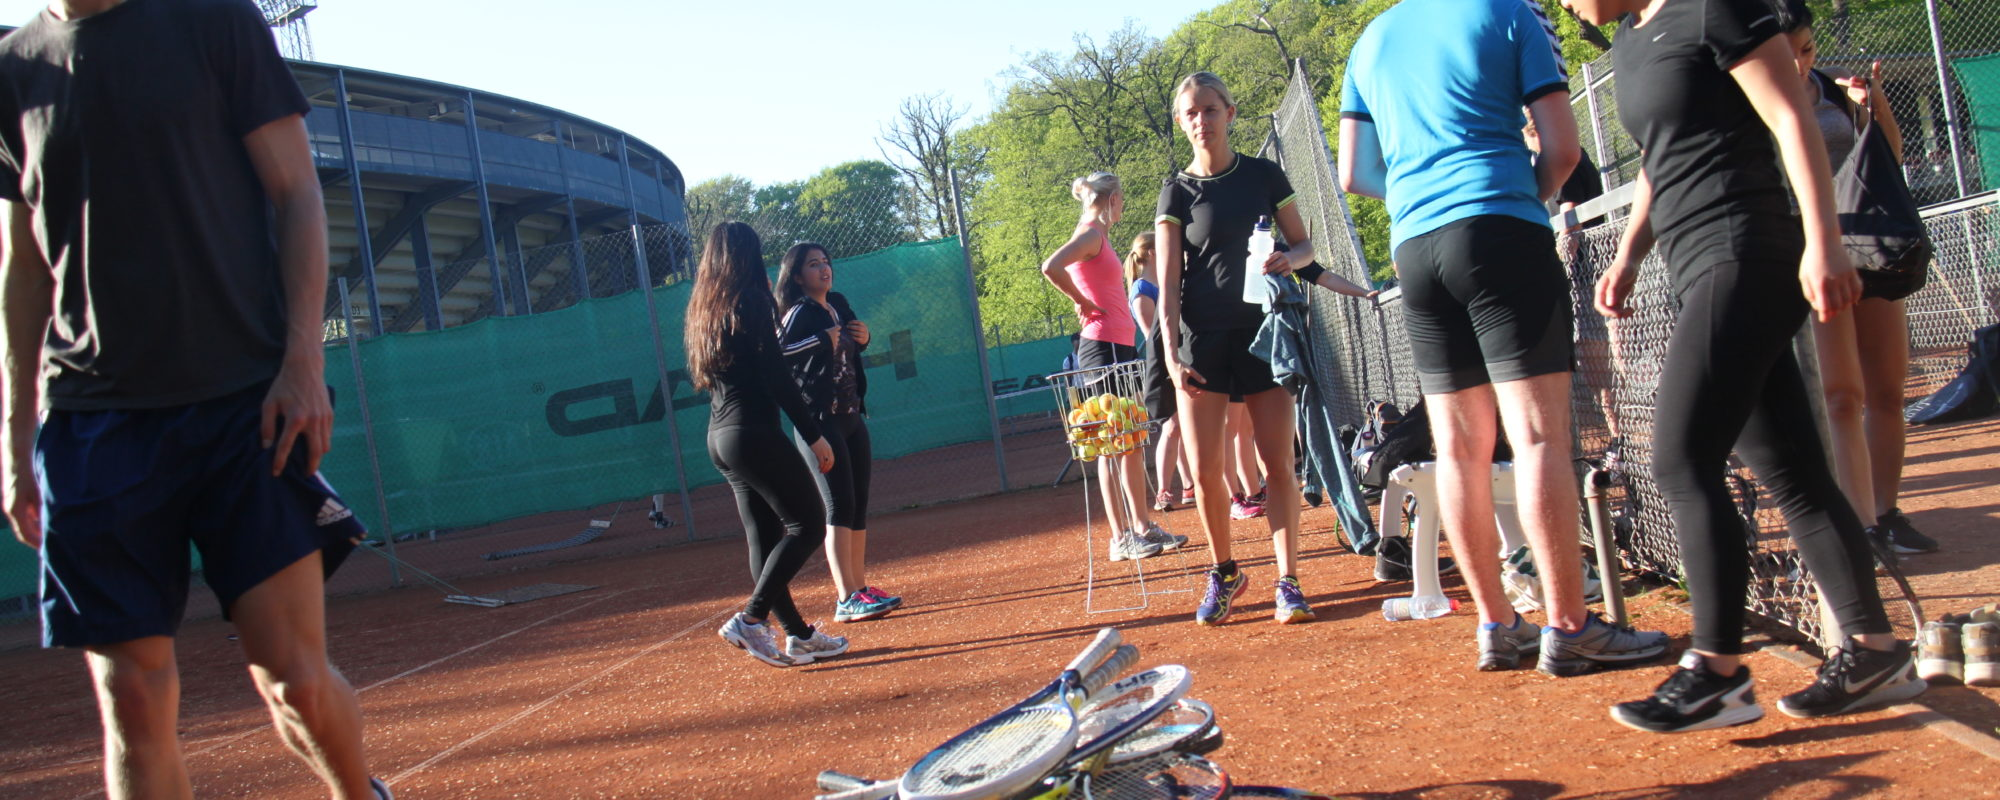 Motionstennis for unge og studerende